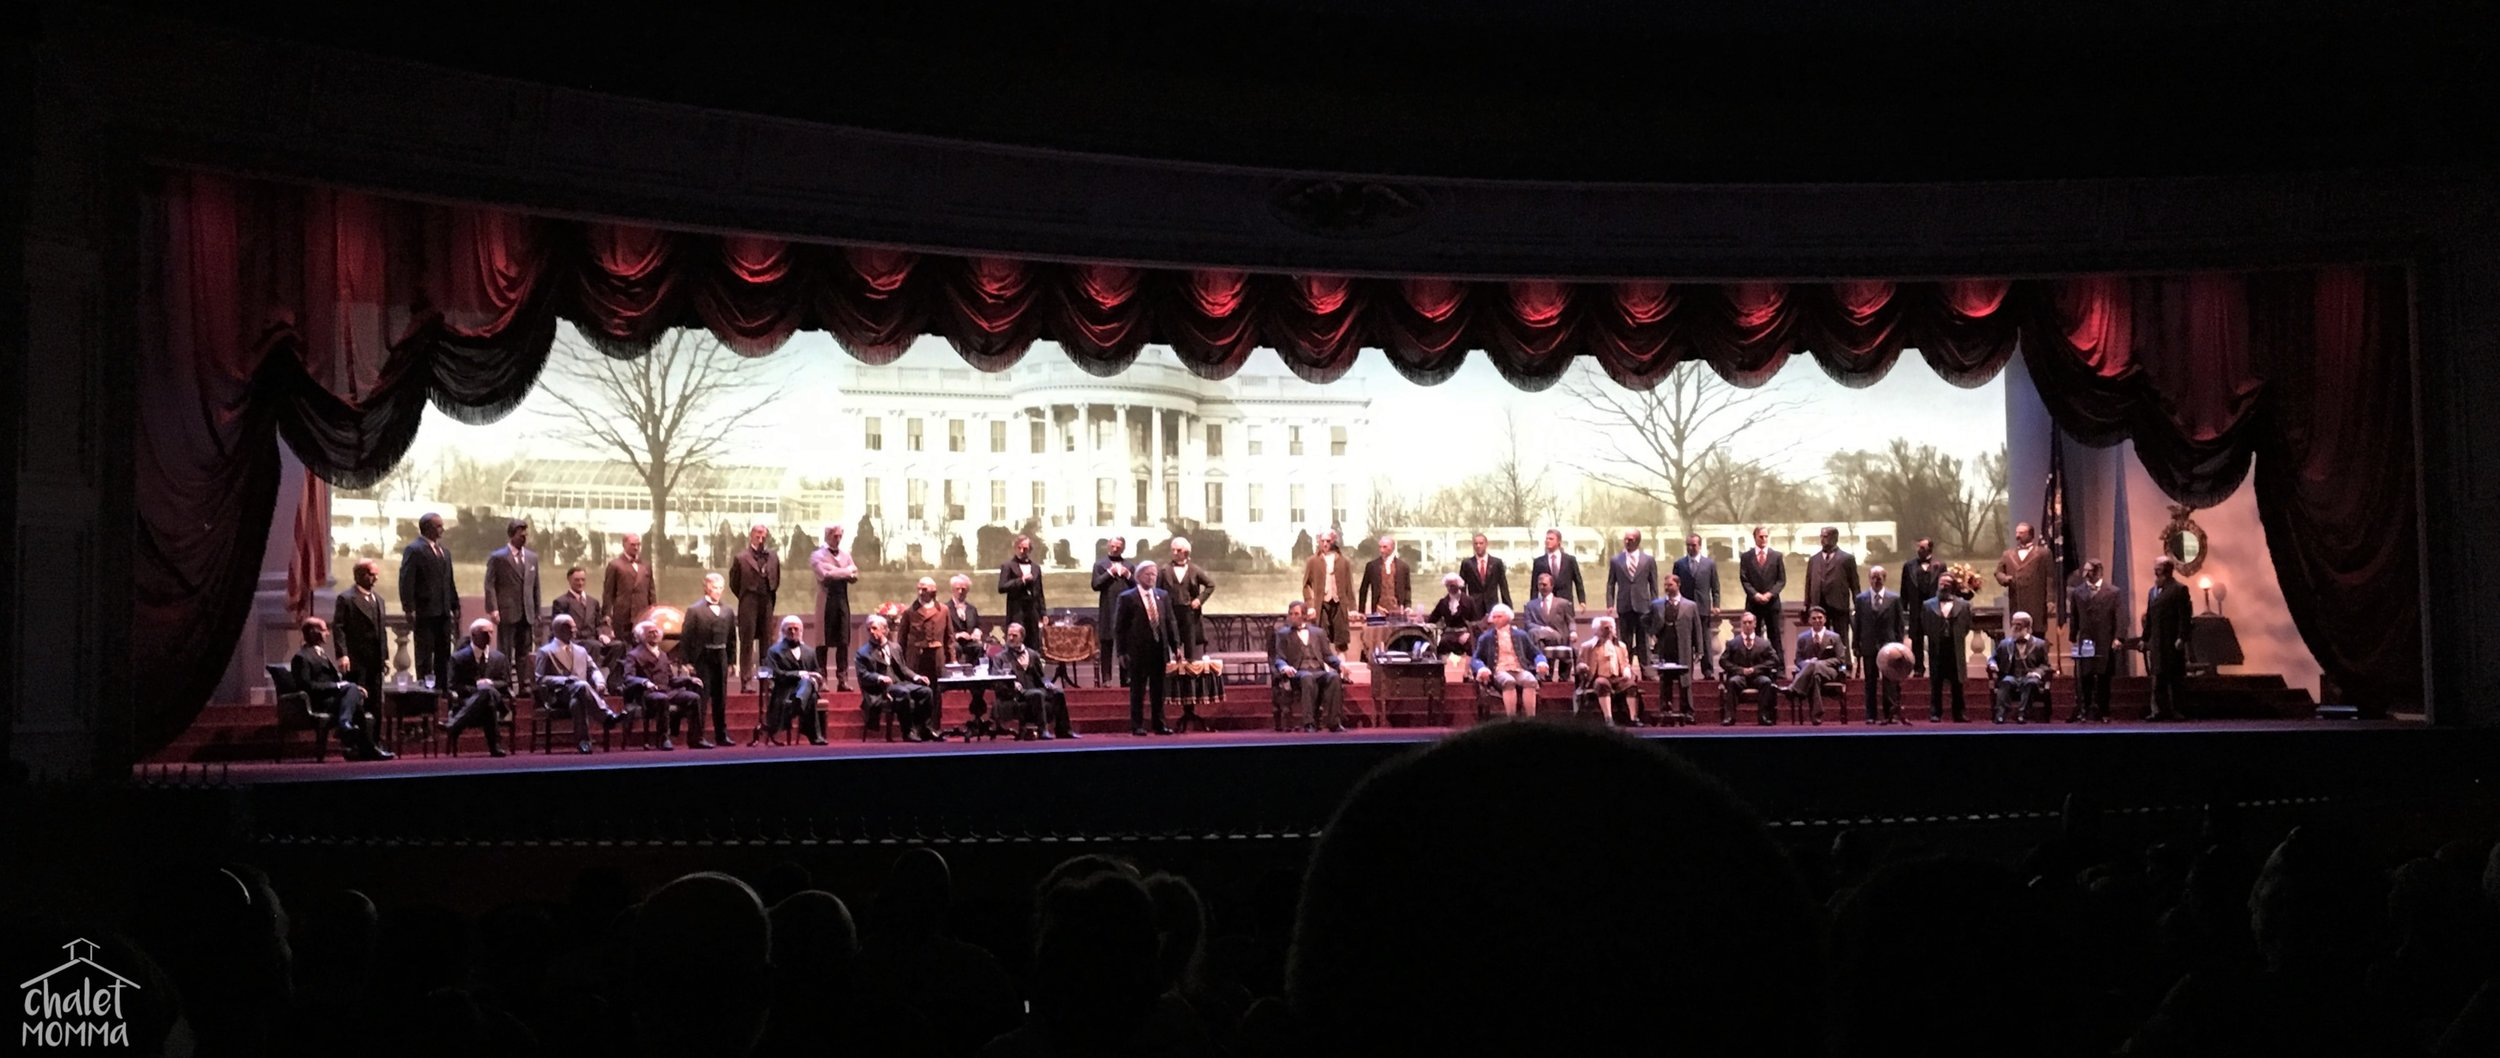 The Hall of Presidents. I loved it as a child and was delighted to share it with my son!